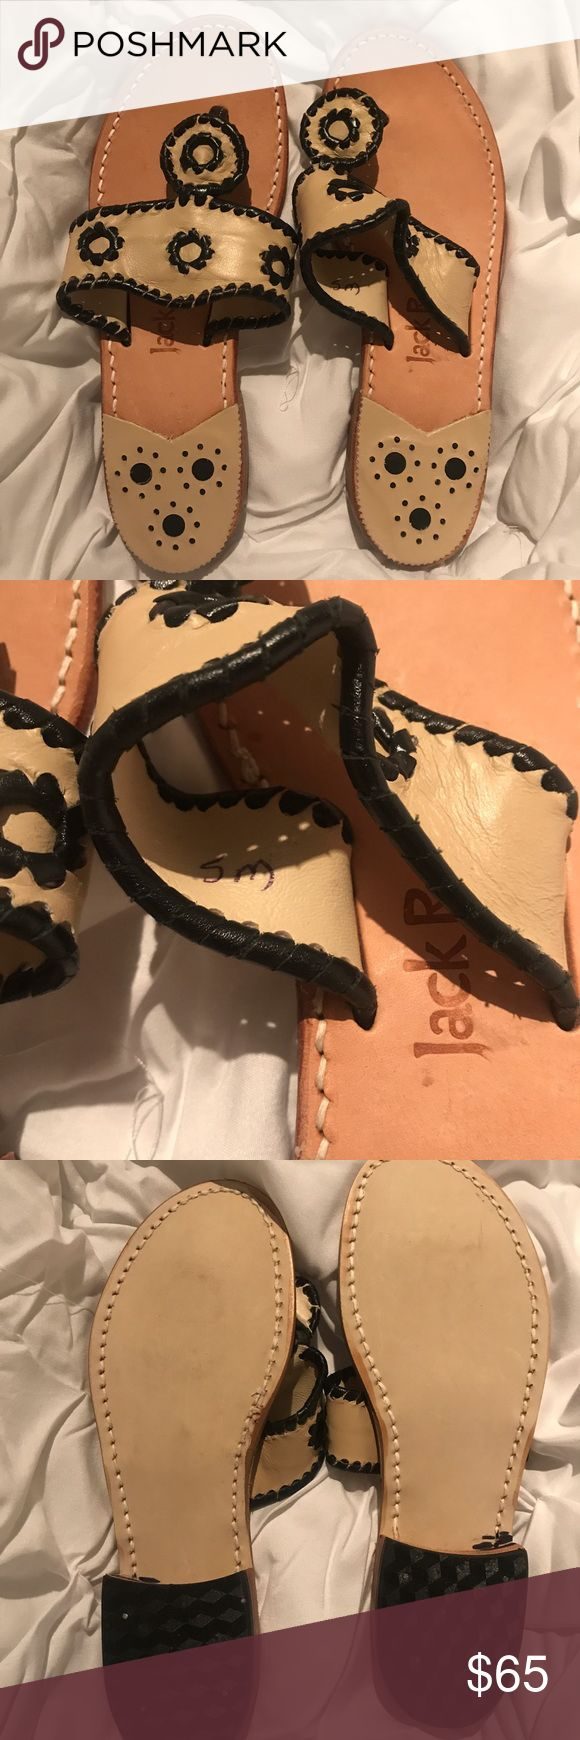 NEW‼️JACK Rogers 5M Condition: only flaw is in the 4th picture. (Wrinkly)  Color: Navajo Bone with Black Size: 5M •• Feel free to ask me any questions about this item. ✨ •• I'm willing to negotiate and I accept reasonable offers. 👍🏻 •• Remember that poshmark has a selling fee when making an offer‼️☺️ •• All my items are in perfect conditions unless stated otherwise. 💕 •• An extra part of the heel was added for more comfort and so the heel won't wear off. Jack Rogers Shoes Sandals